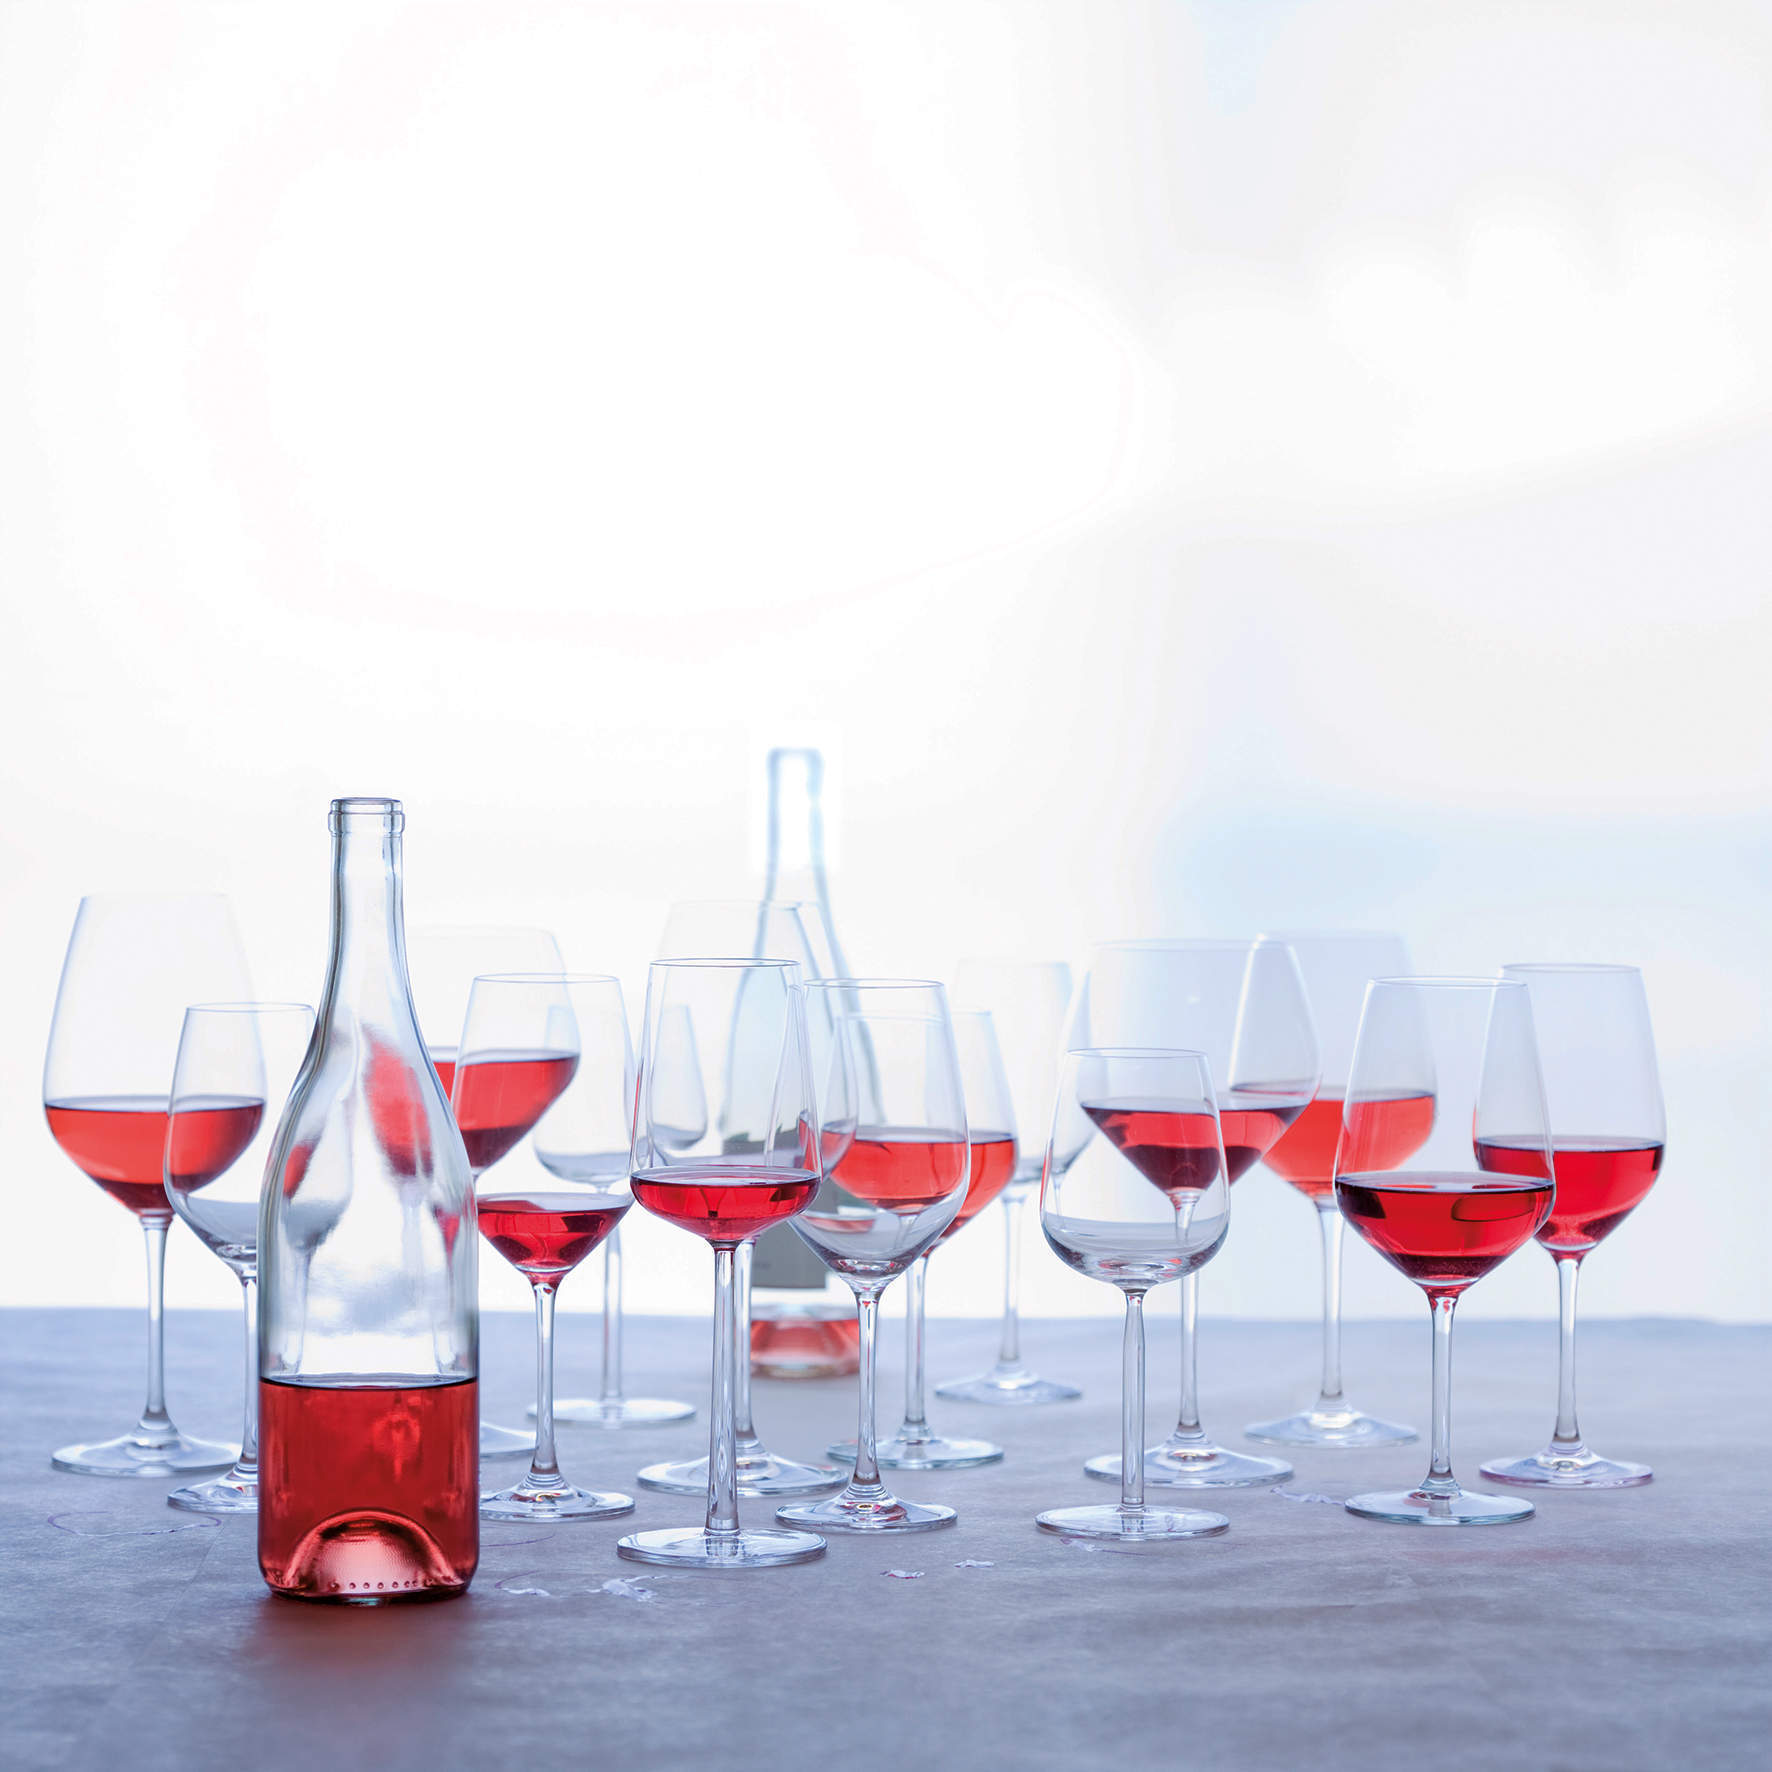 Rosé is as macho as claret - real men should drink it with pride